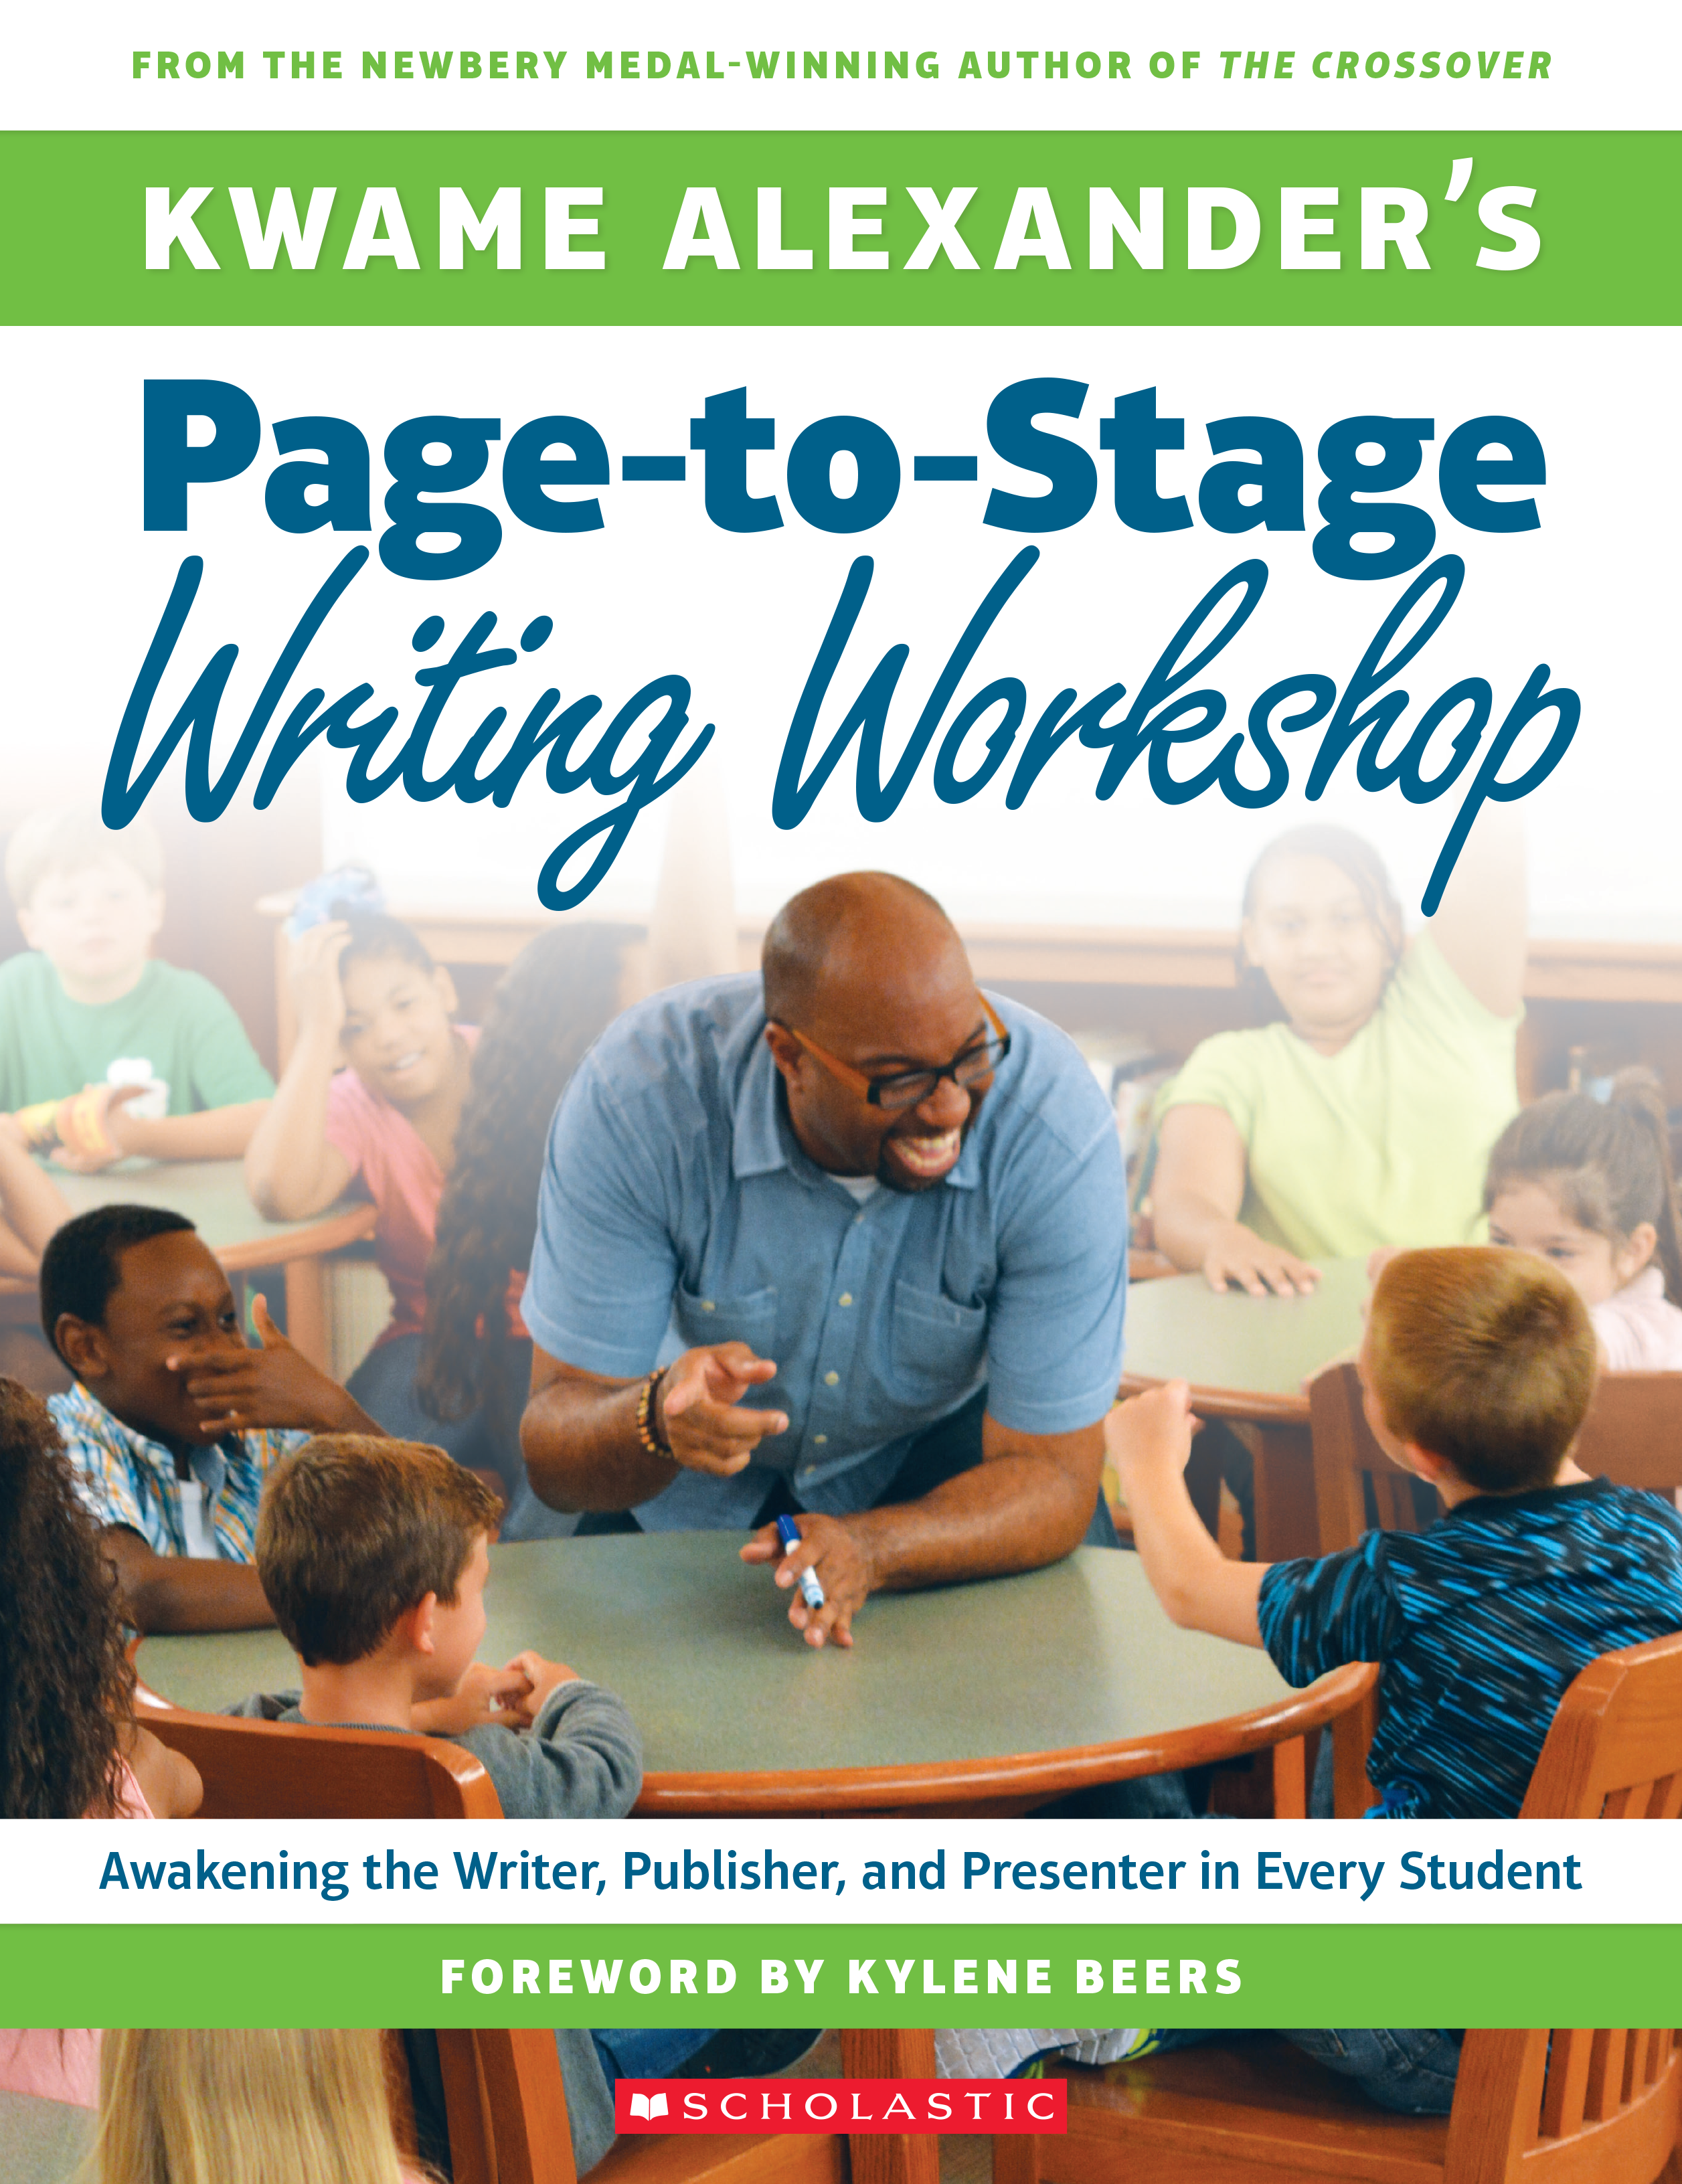 Kwame Alexander's Page-to-Stage Writing Workshop